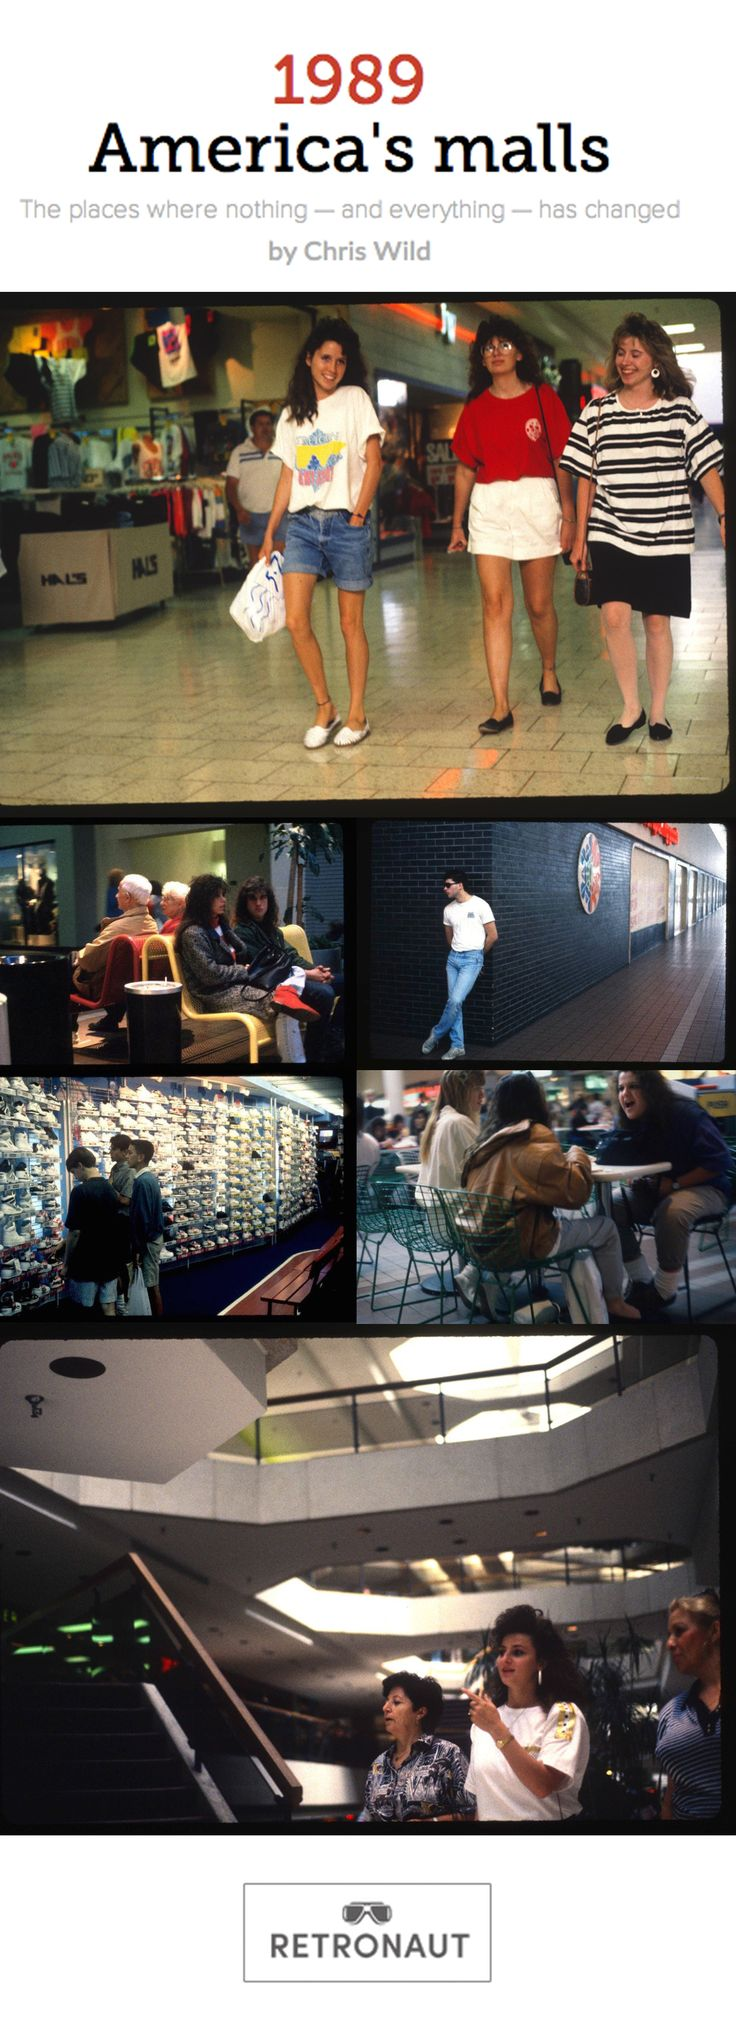 Best Malls Images On Pinterest Shopping Malls S And - Shopping malls america changed since 1989